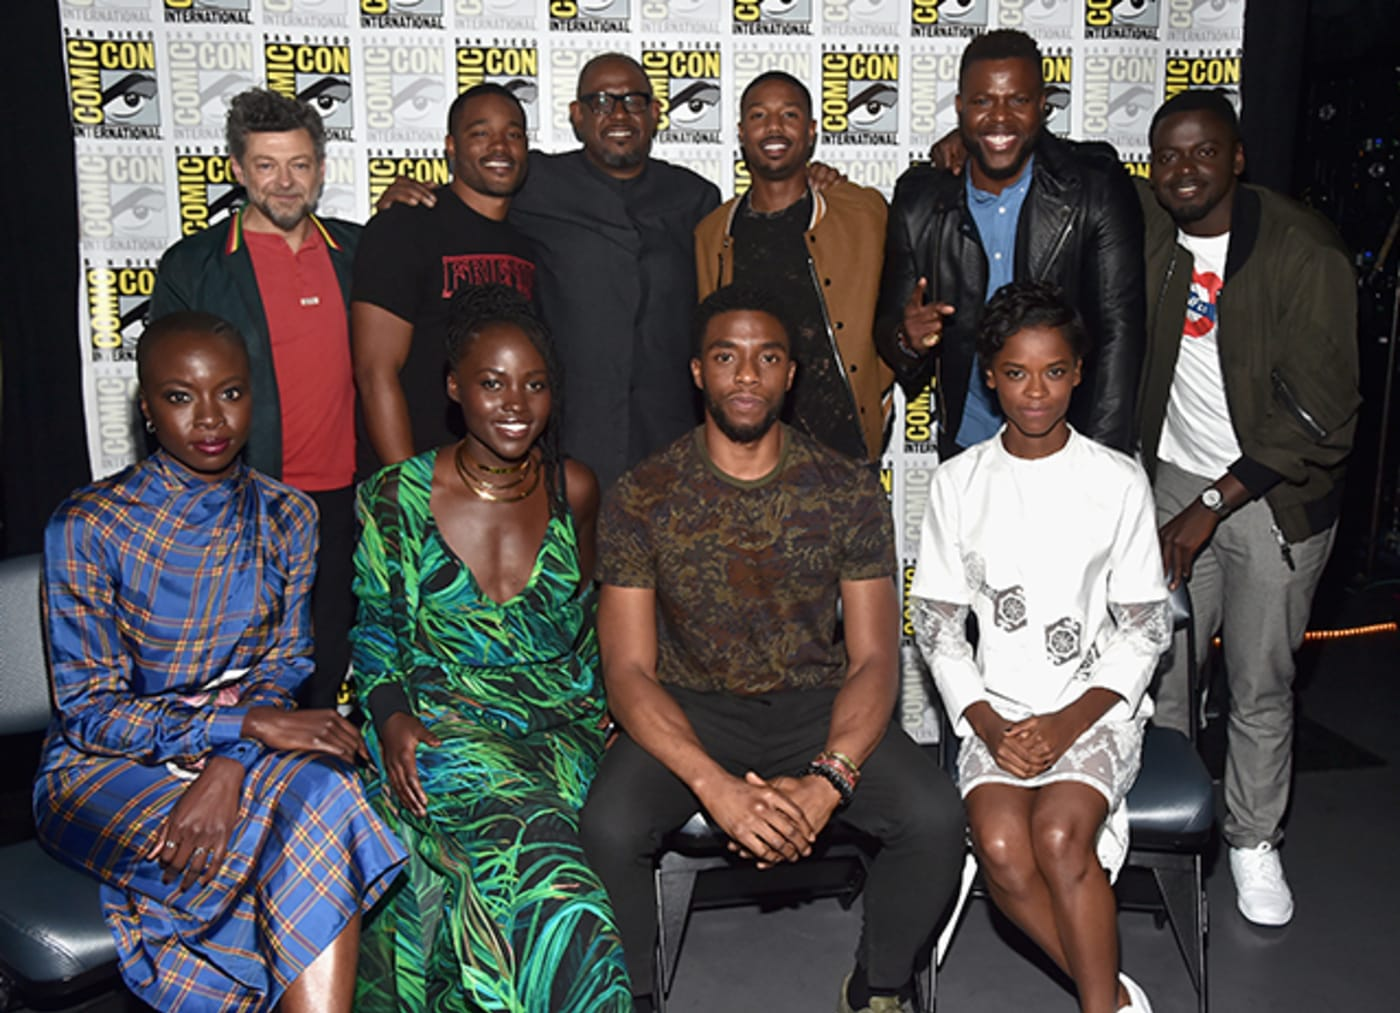 The Cast of 'Black Panther' at San Diego Comic Con 2017